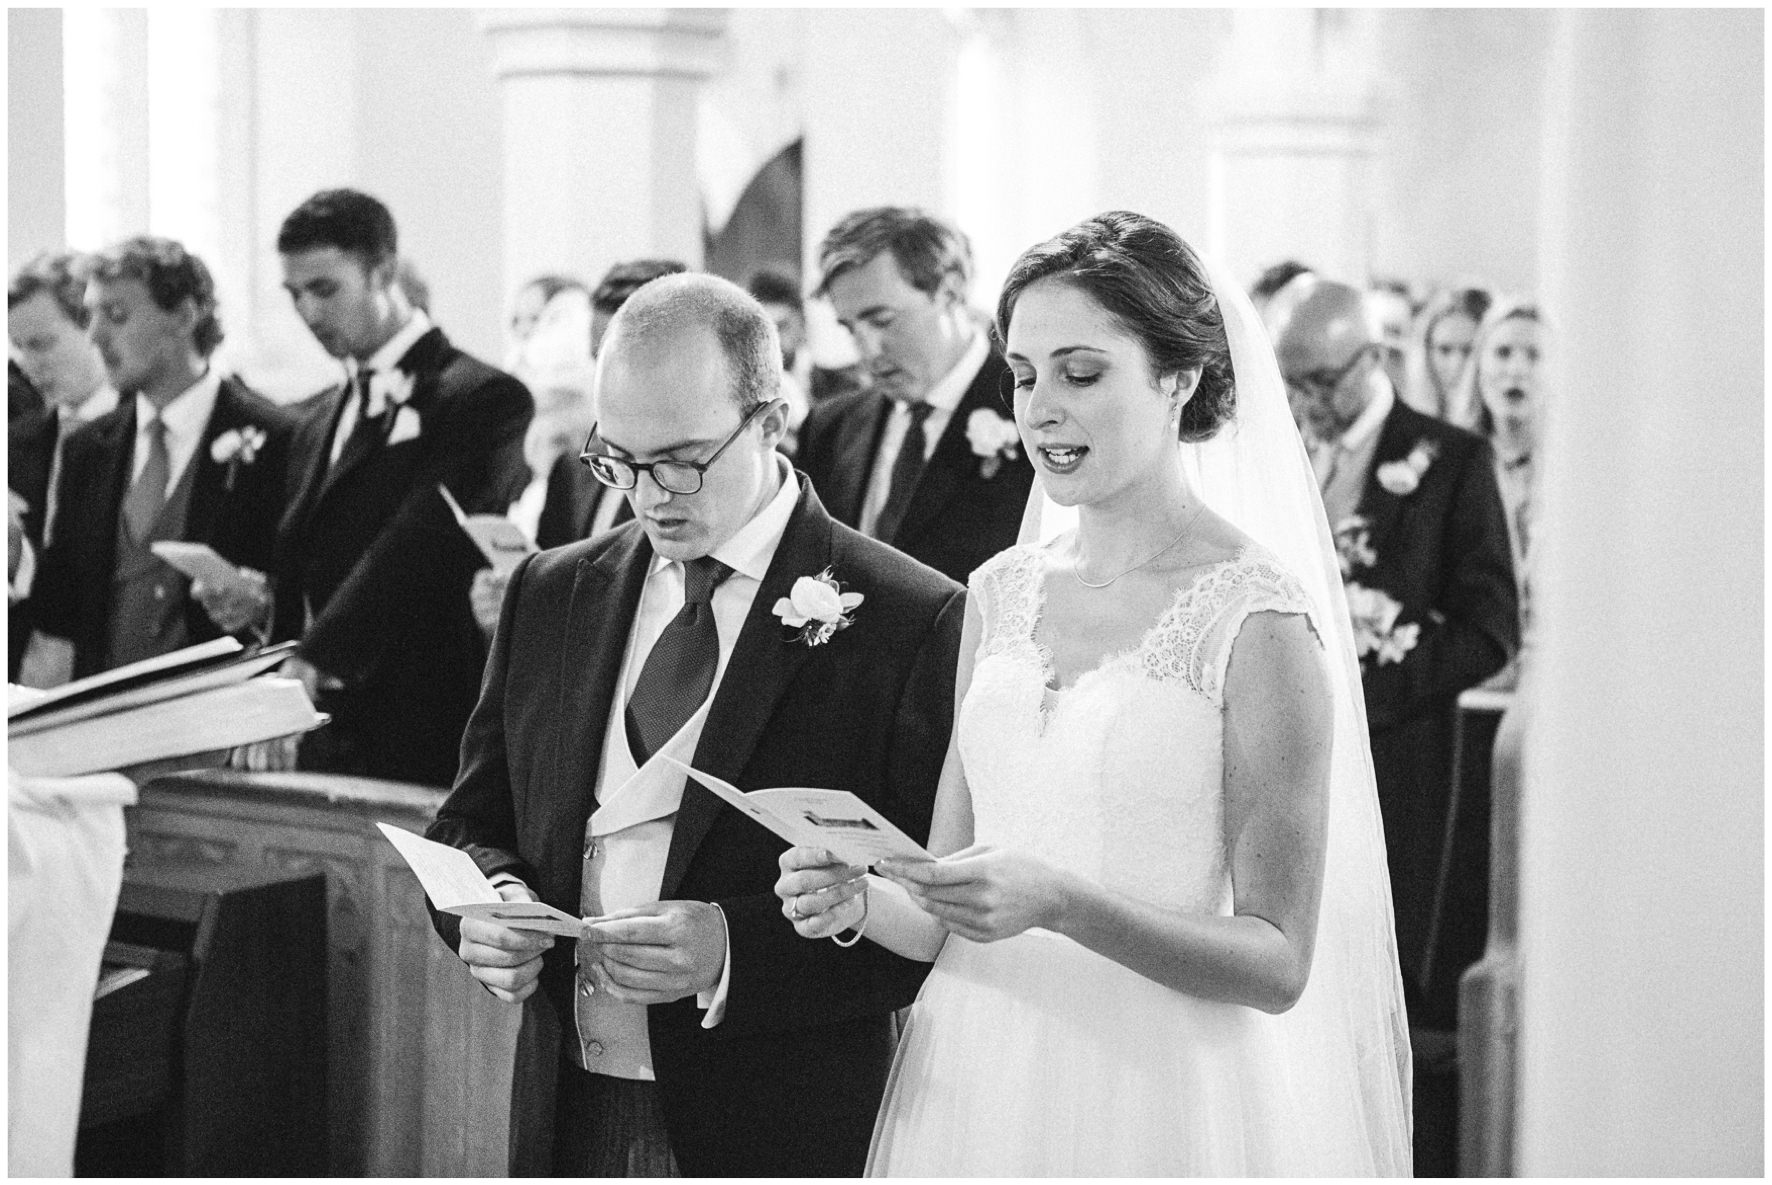 Lucy Davenport Photography, Cornwell Manor, wedding venue, Oxfordshire, Cotswold wedding, church wedding, Kingham, bride and groom, wedding ceremony